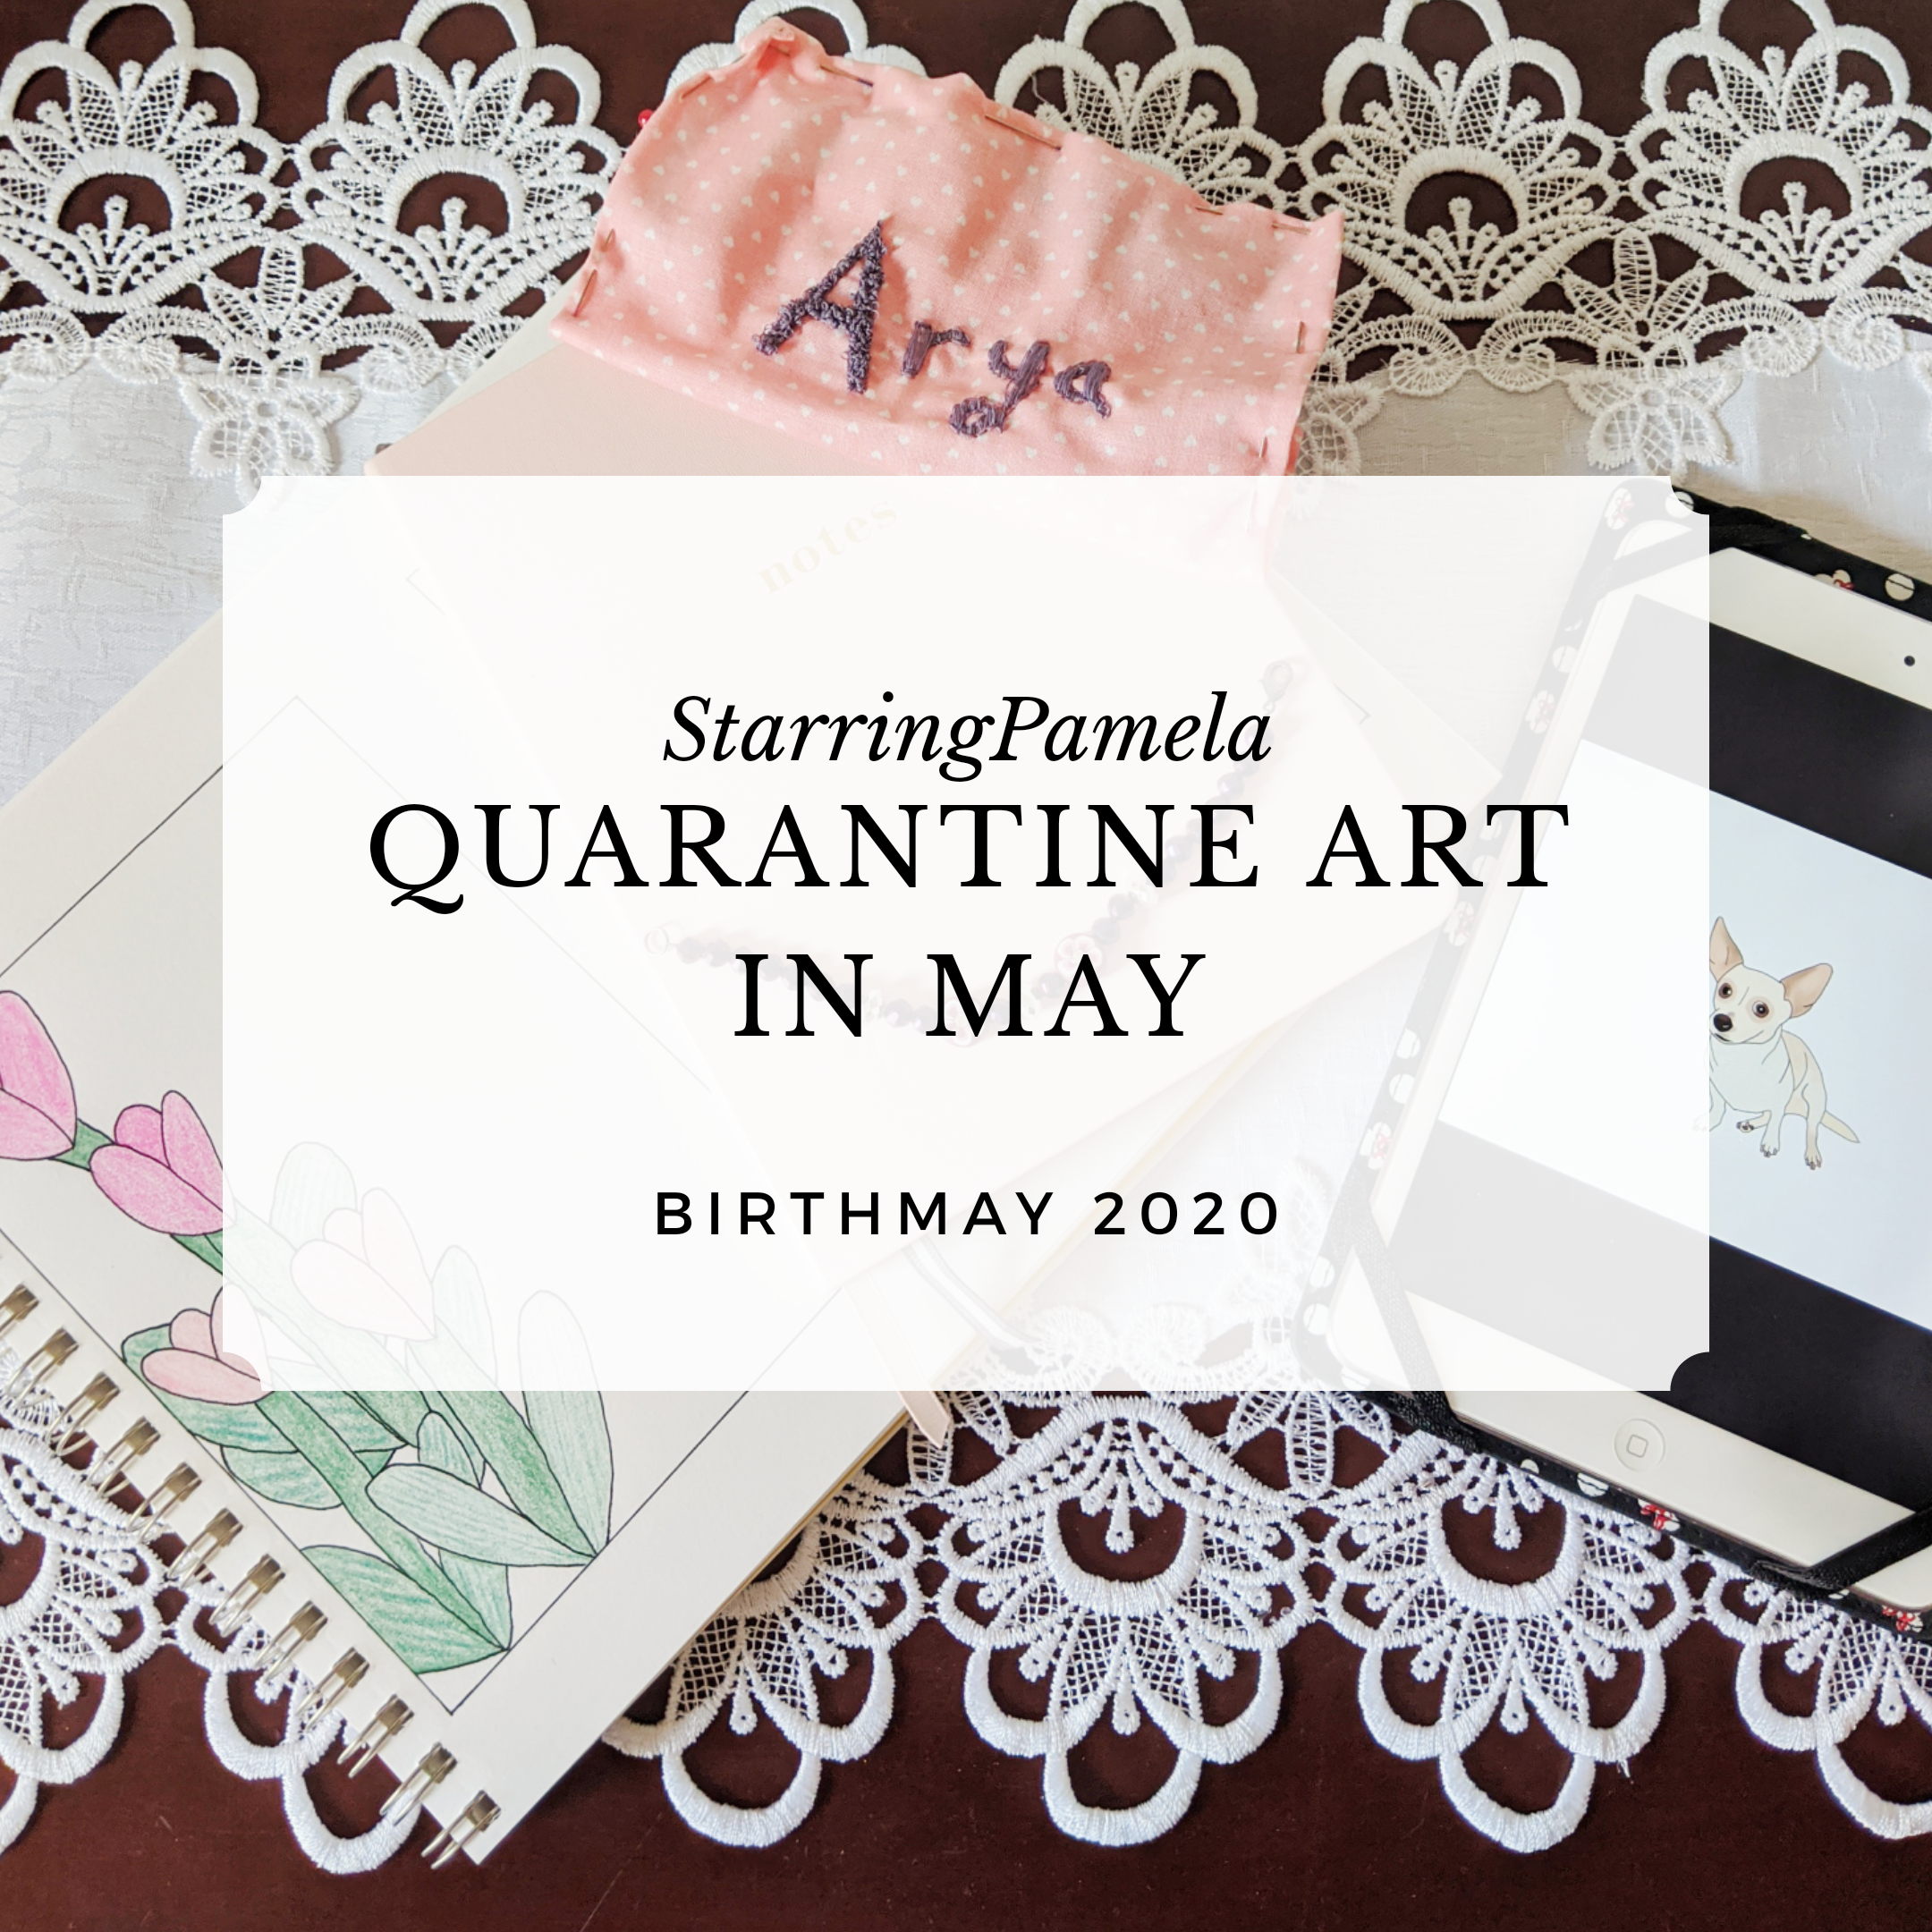 quarantine art in may featured image